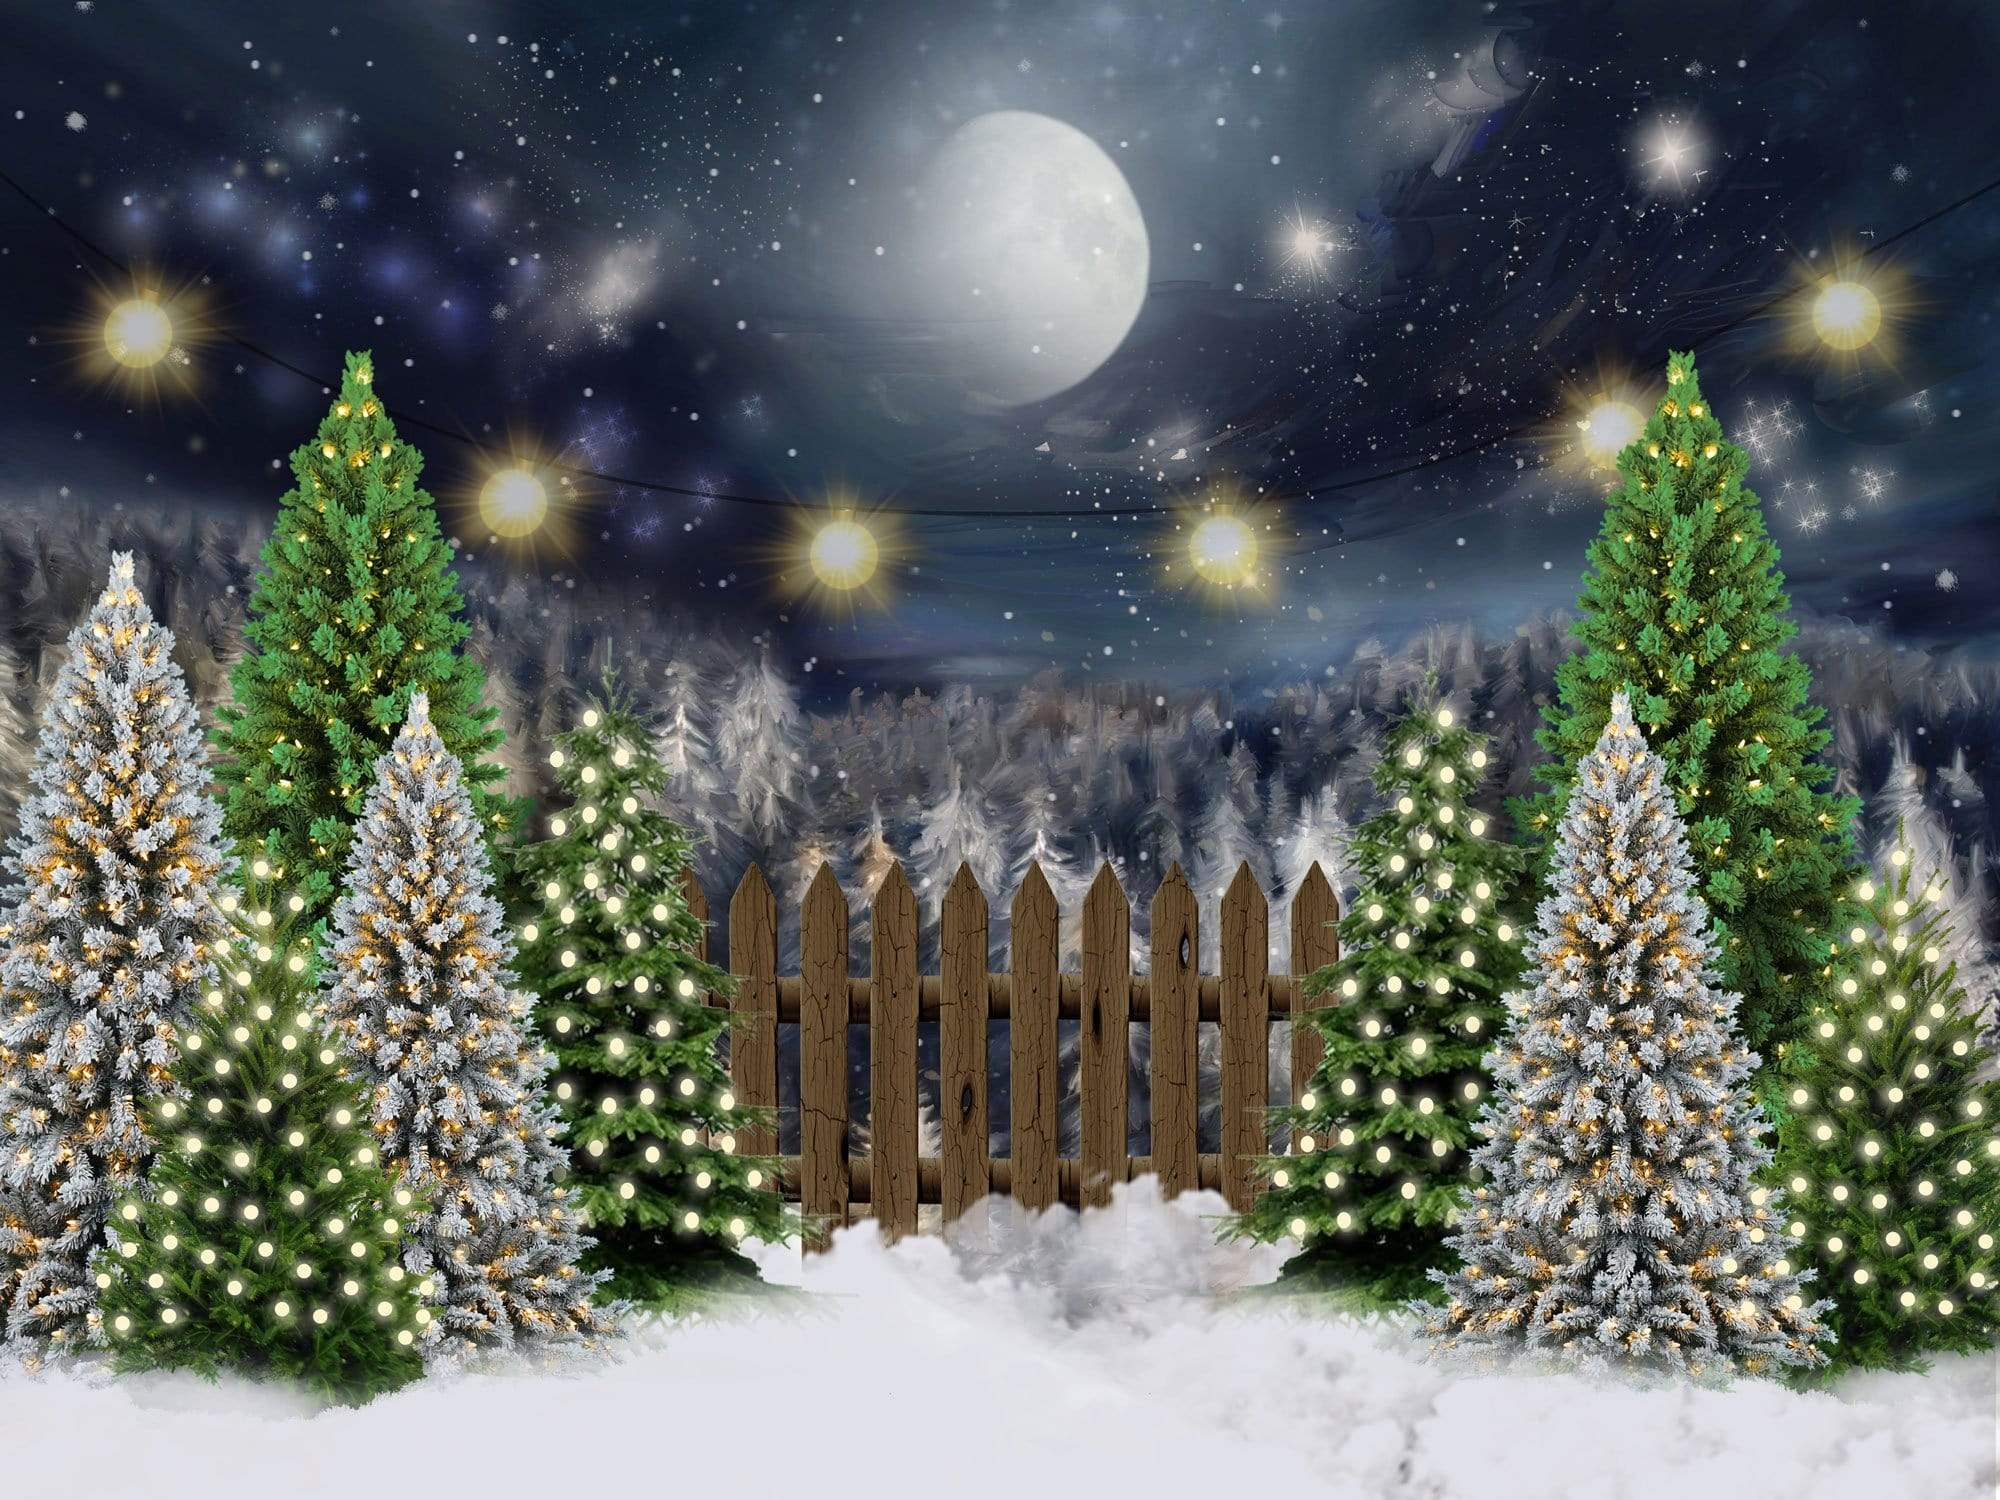 Load image into Gallery viewer, Kate Christmas Night Pine Trees Farm Backdrop Designed By Jerry_Sina